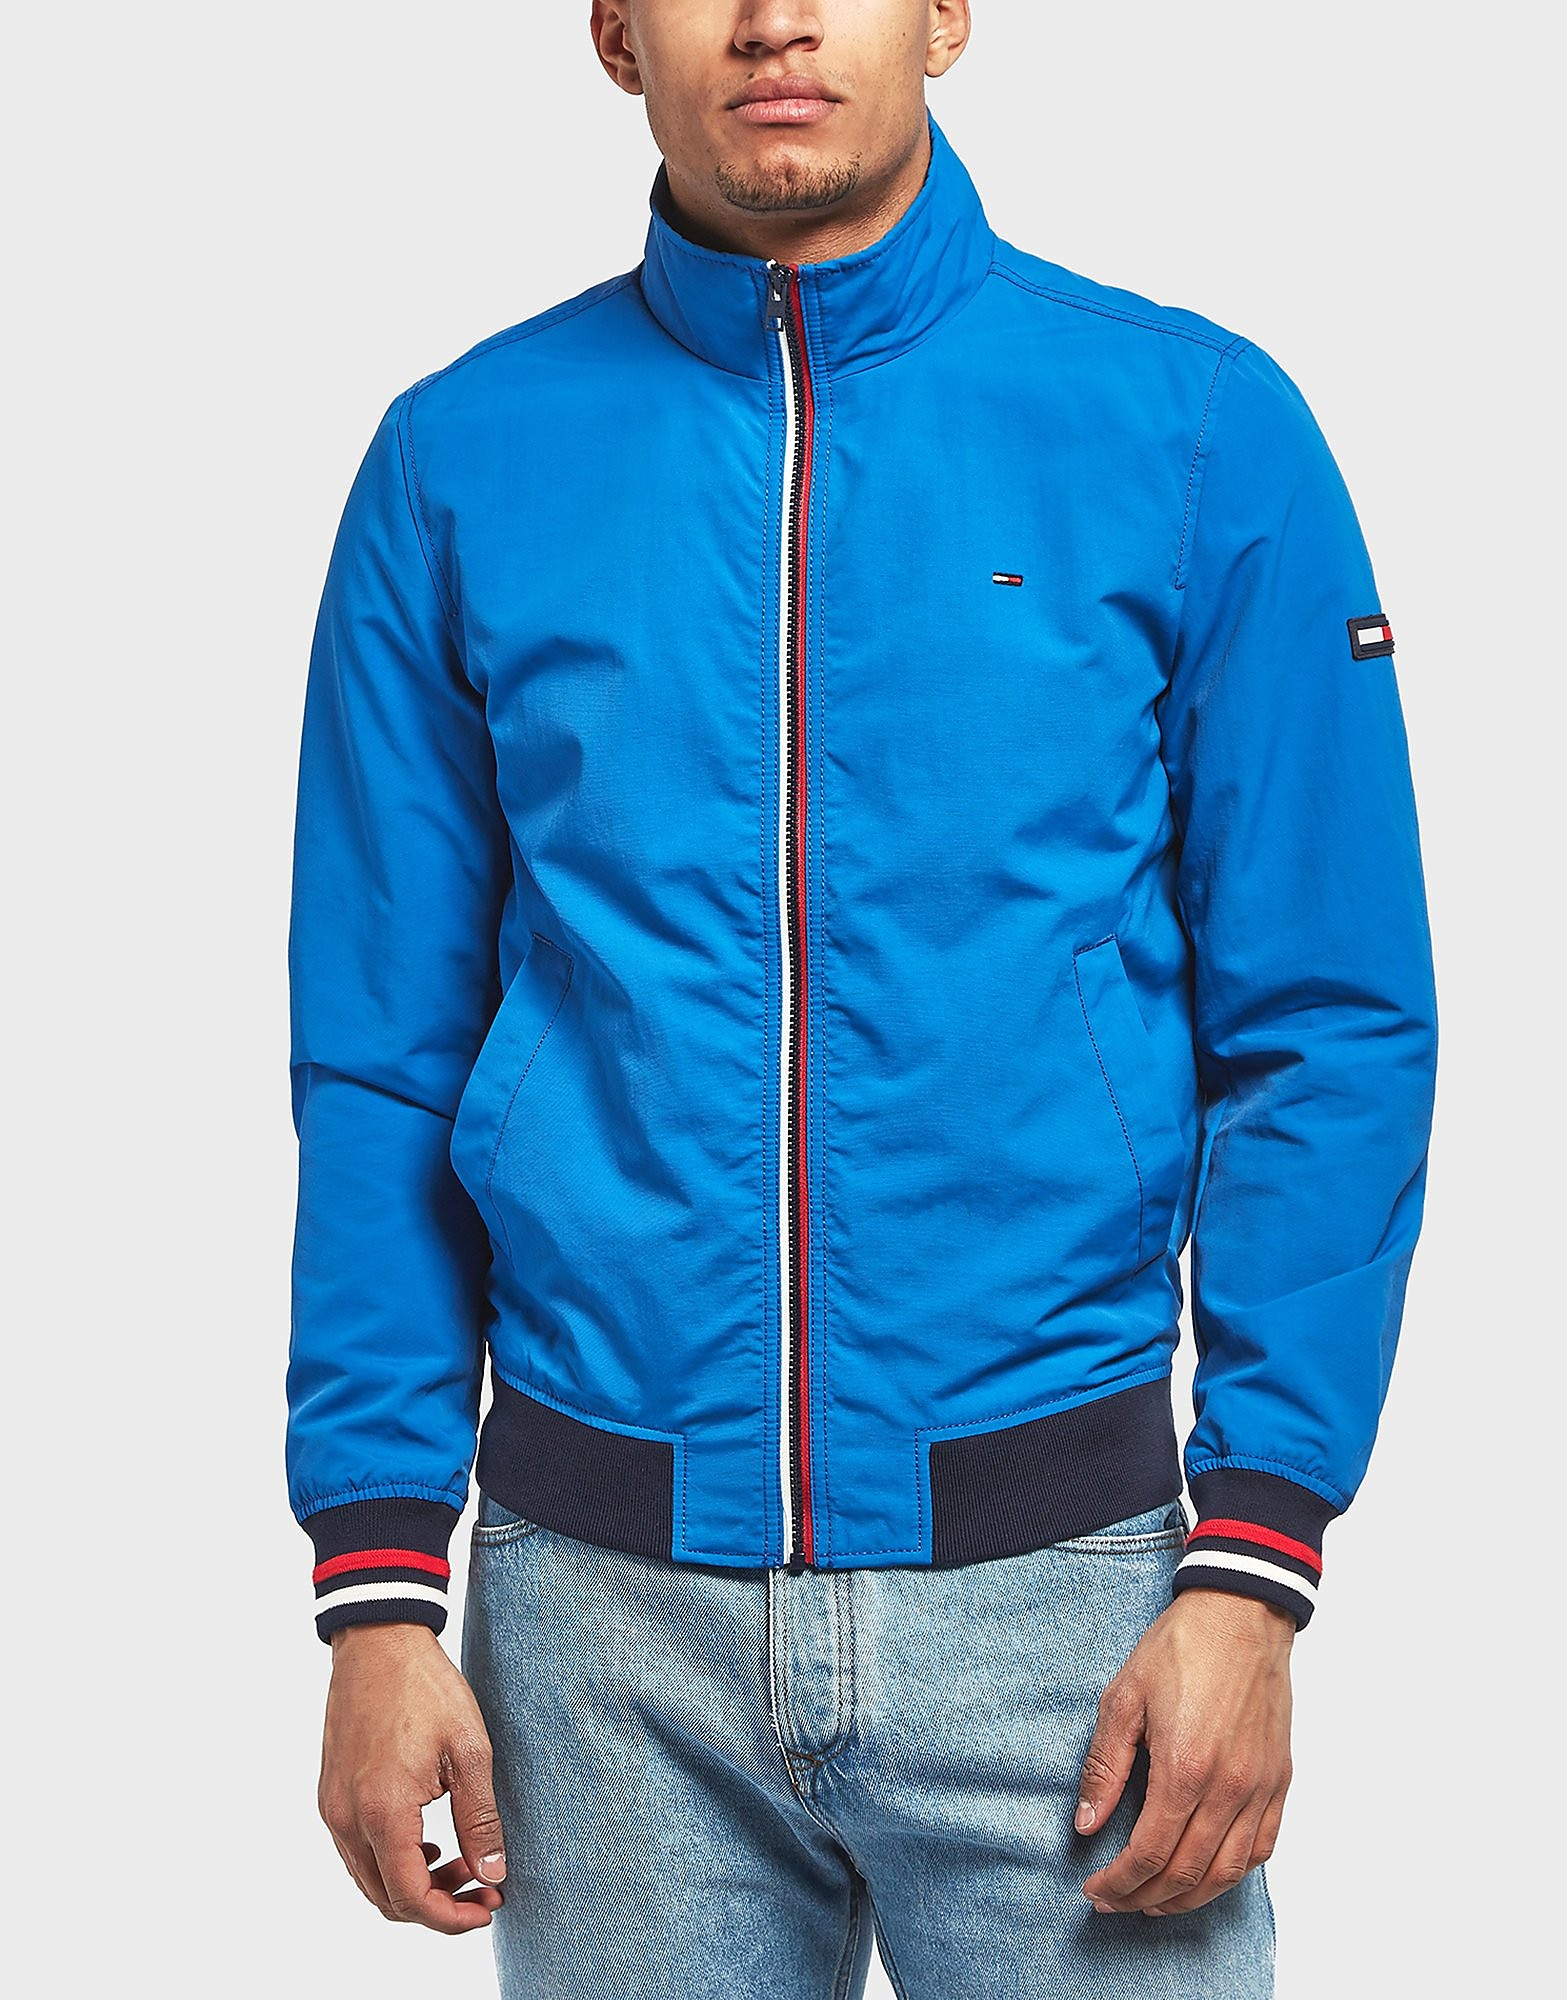 Tommy Hilfiger Casual Lightweight jacket